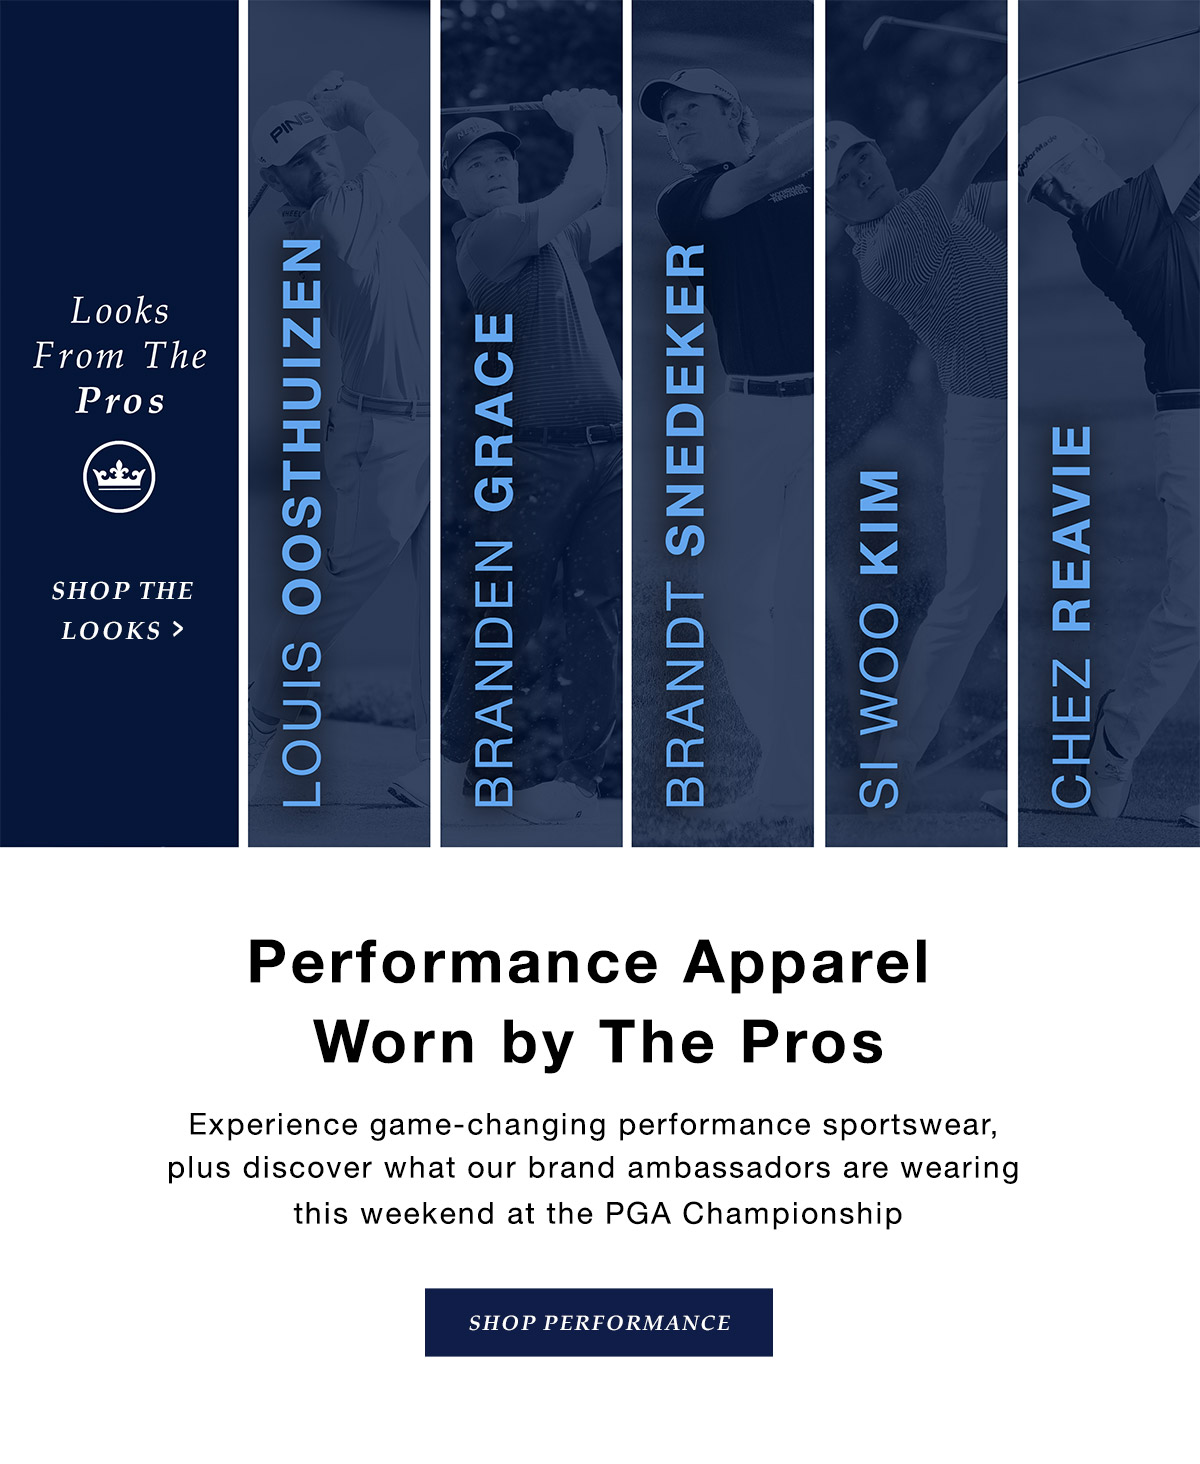 Looks From The Pros